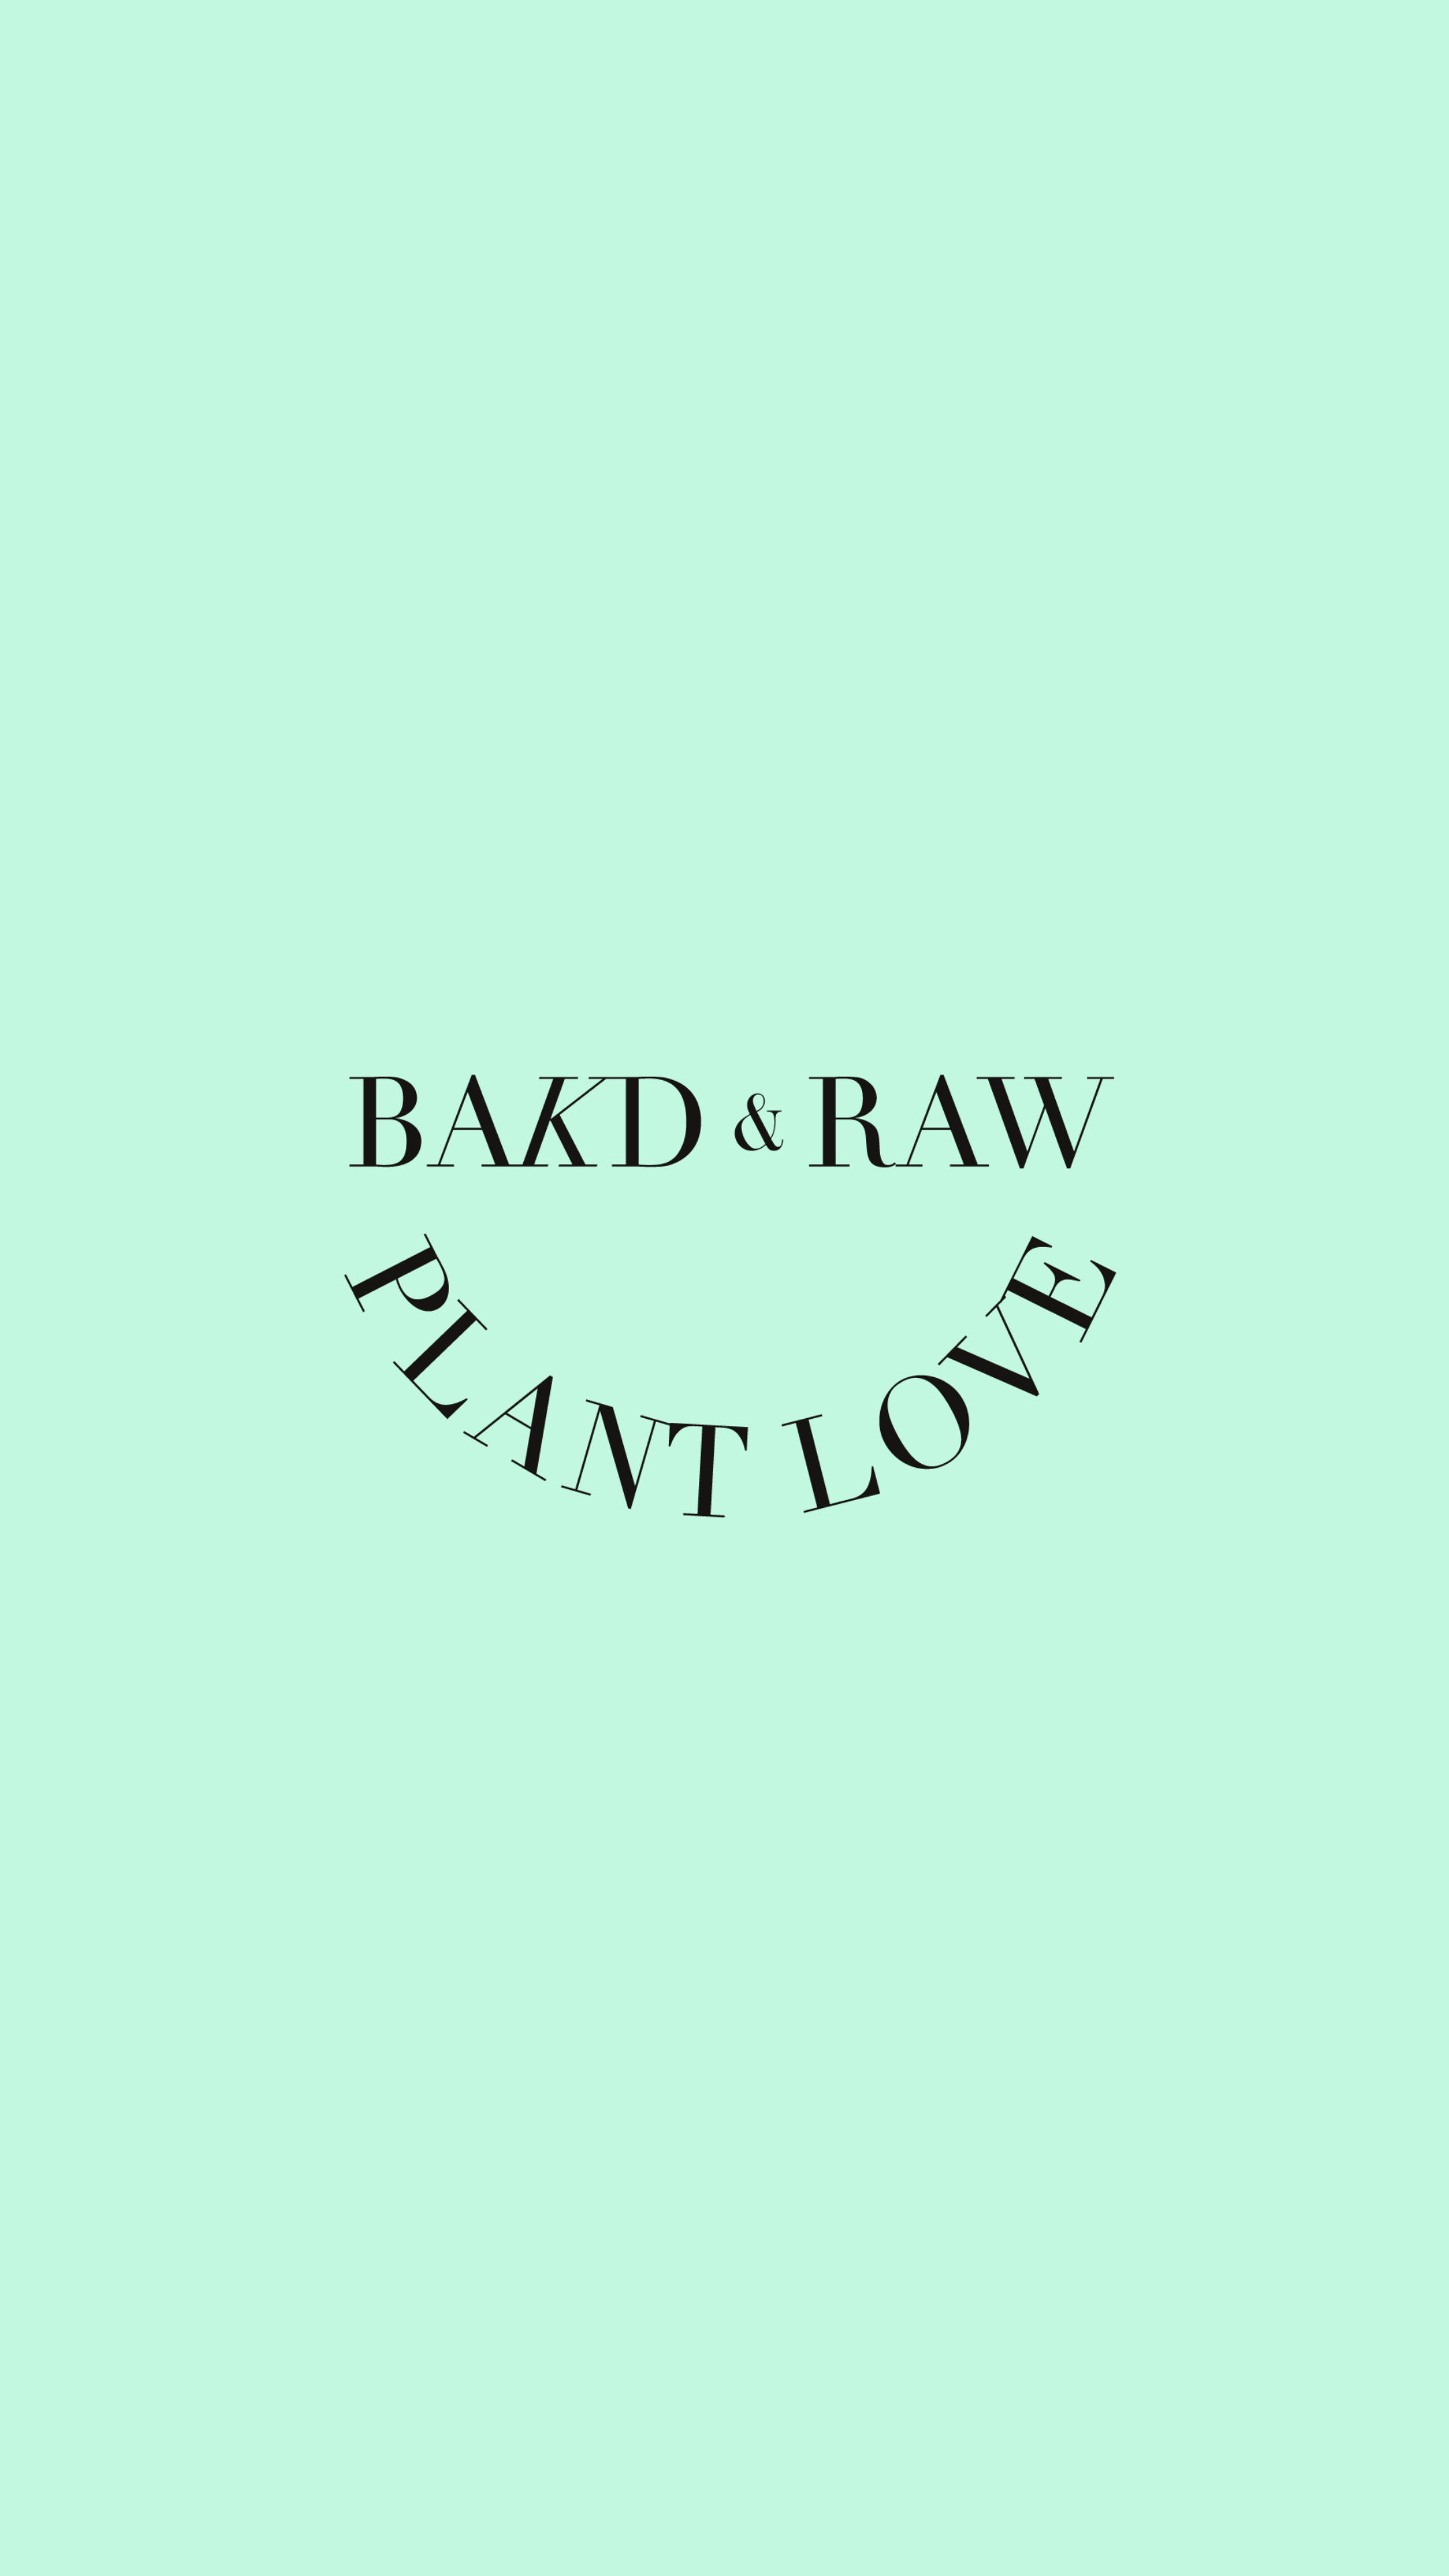 Bakd&Raw Plant Love by Karolin Baitinger